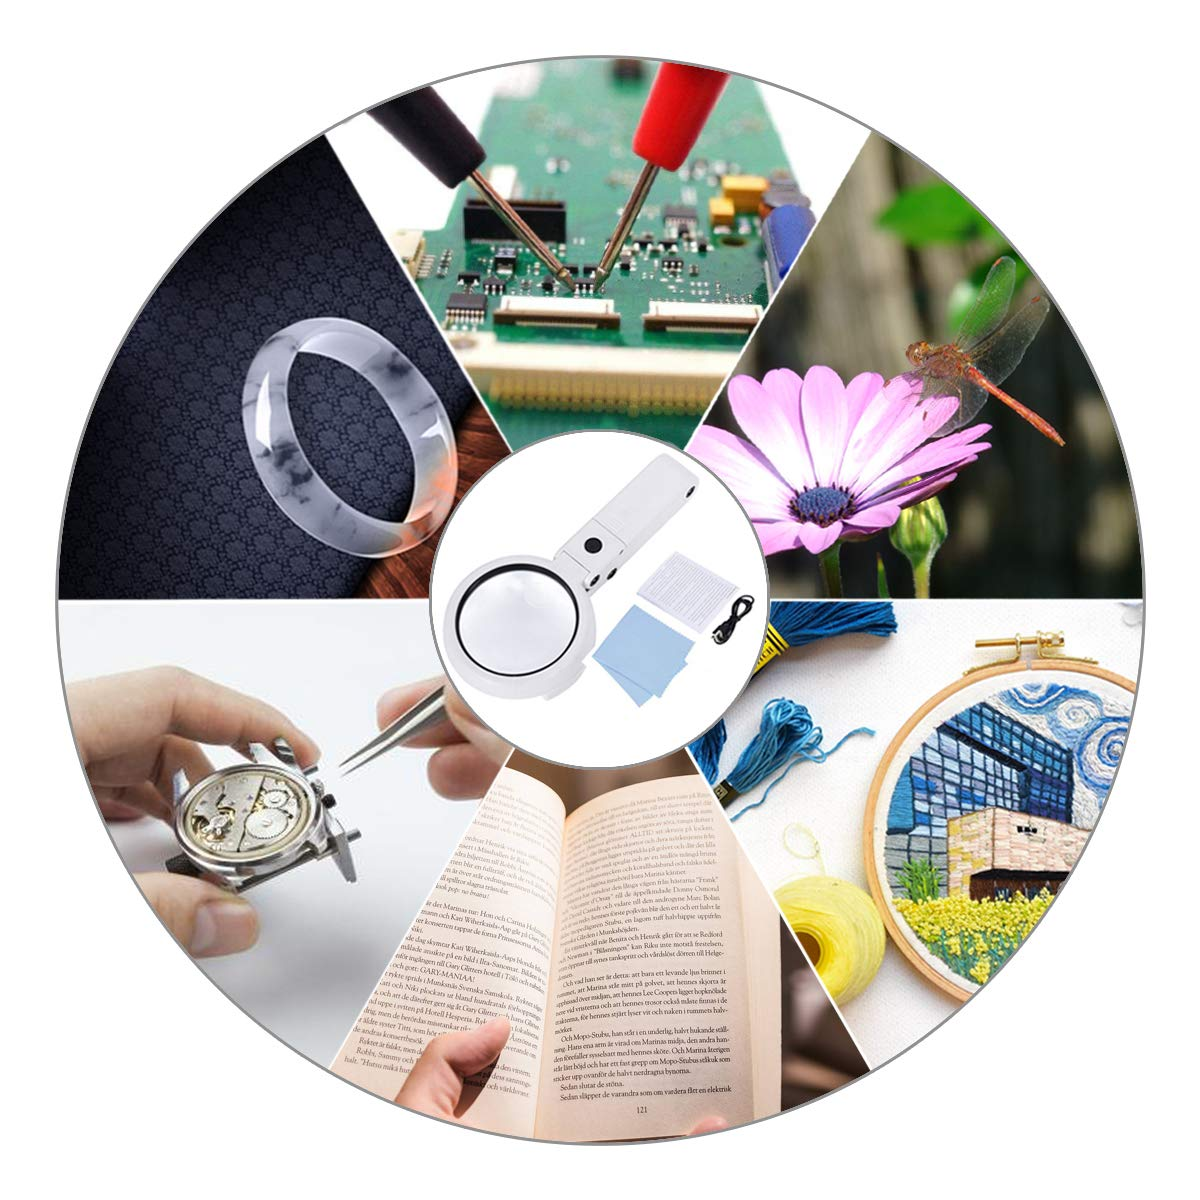 Large Magnifying Glass Lamp with Led Light and Stand Magnifier Loupe Visor 2.5X 5X Hands-Free for Close Work,Repair,Sewing,Crafts